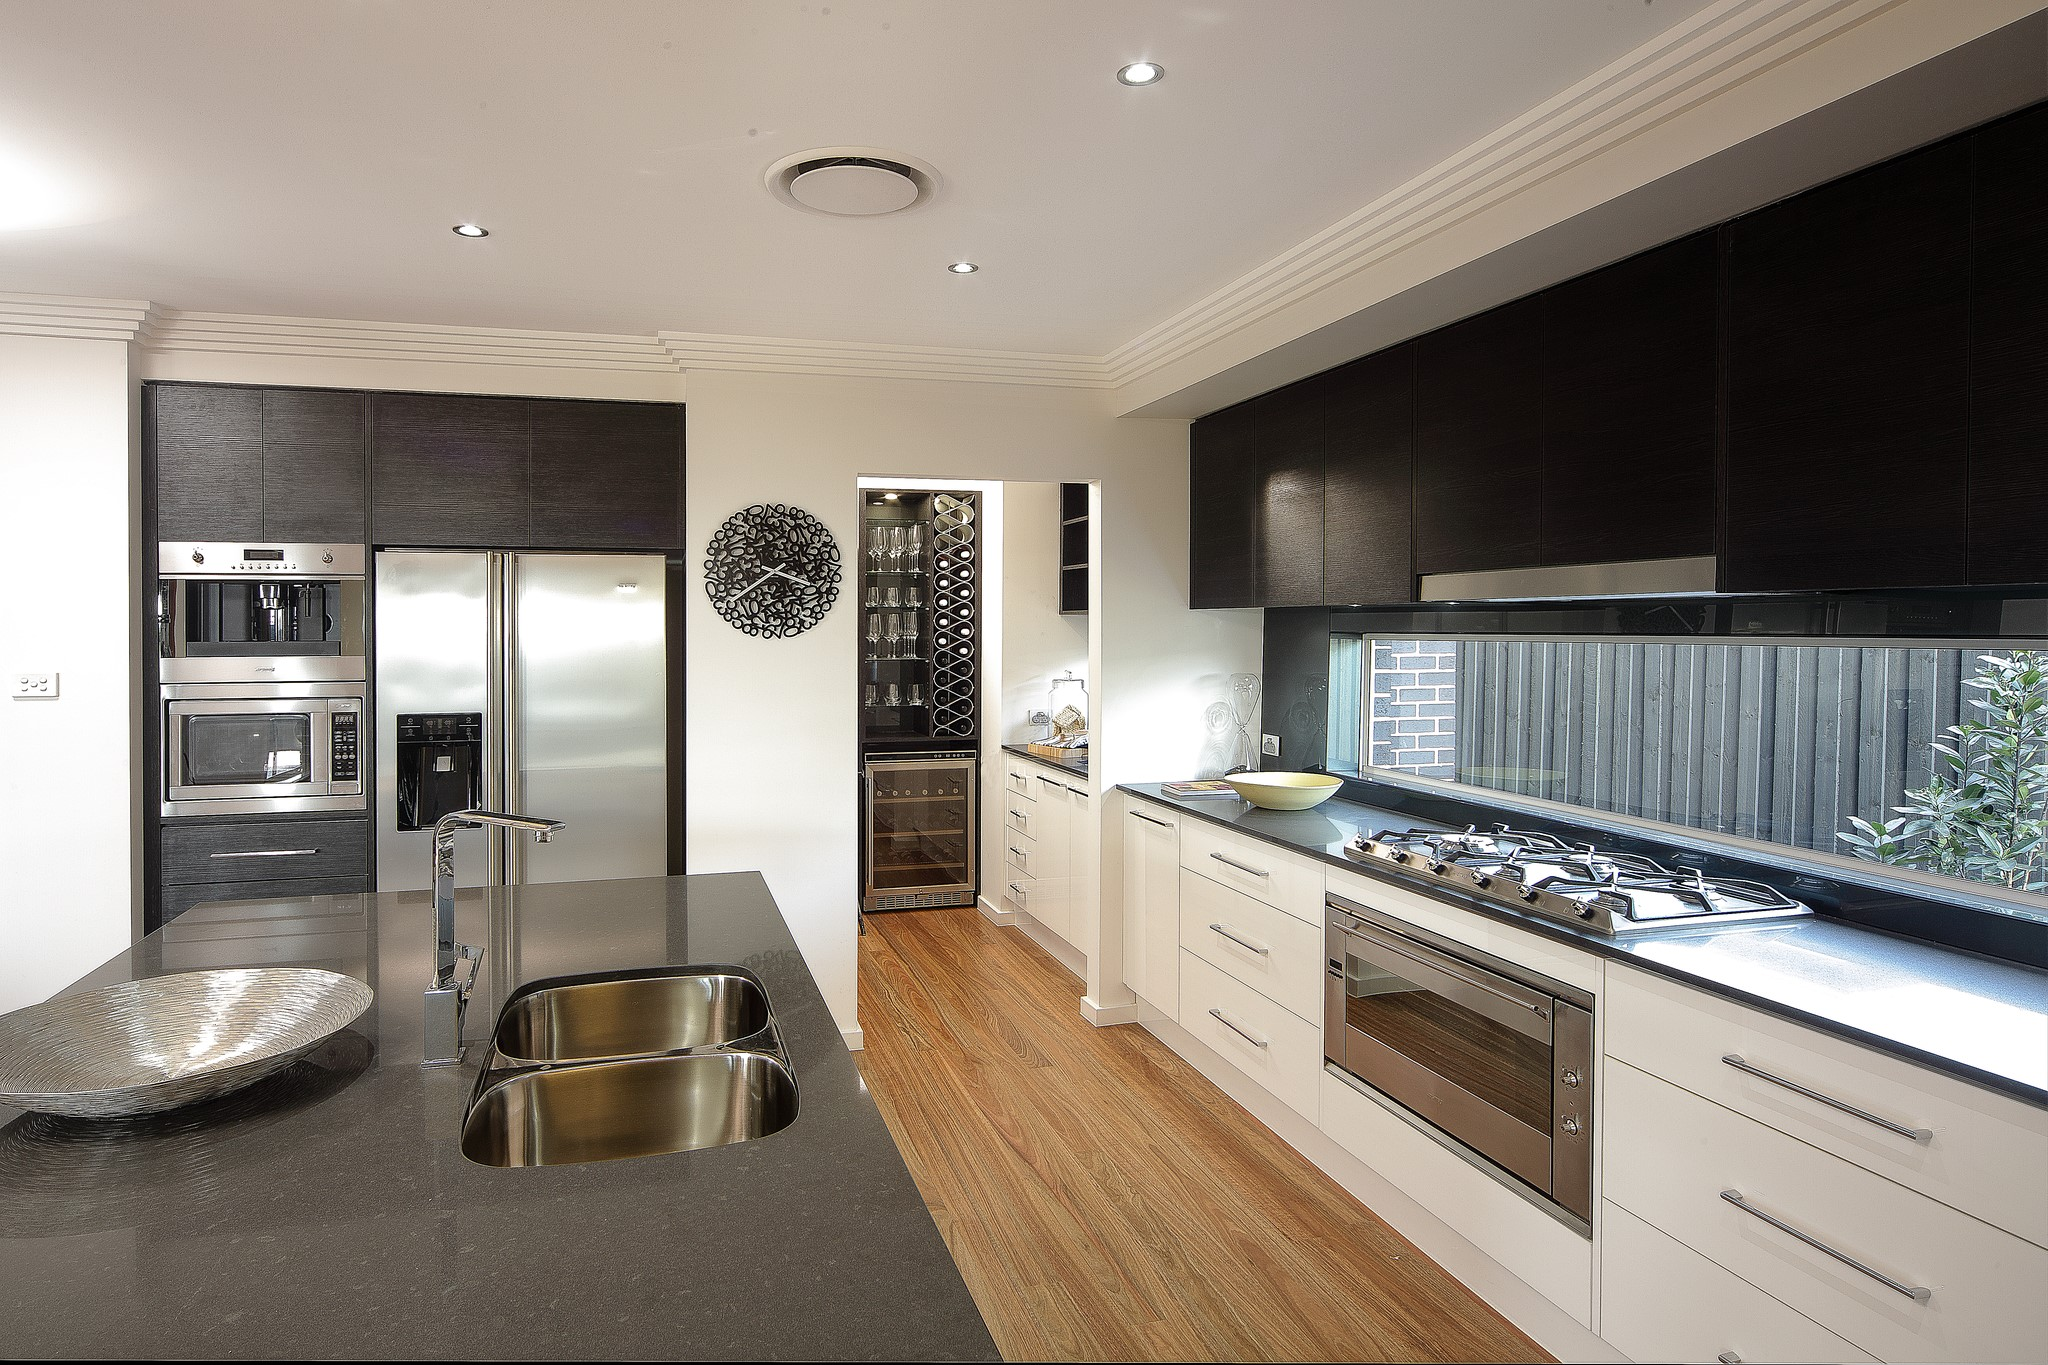 Butlers Kitchen Designs Of 6 Top Tips For Kitchen Design Kitchen Exquisite